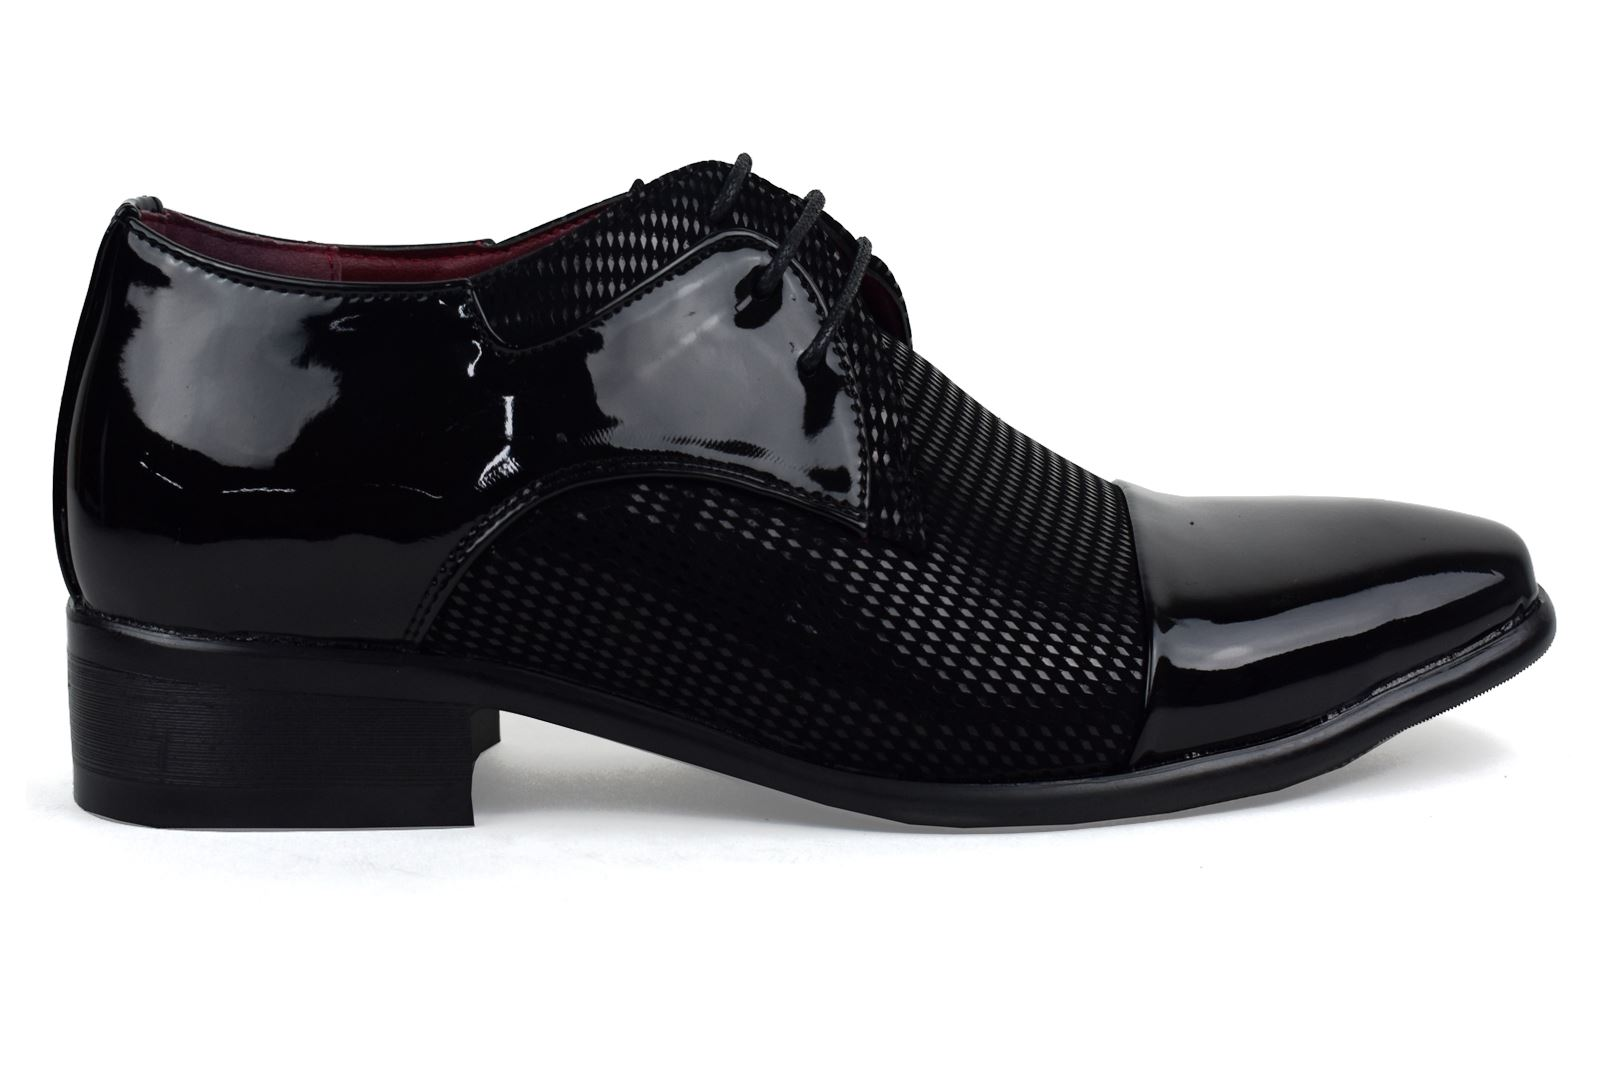 Mens-UK-Style-Leather-Lining-Formal-Office-Wedding-Smart-Work-Brogue-Shoes thumbnail 71